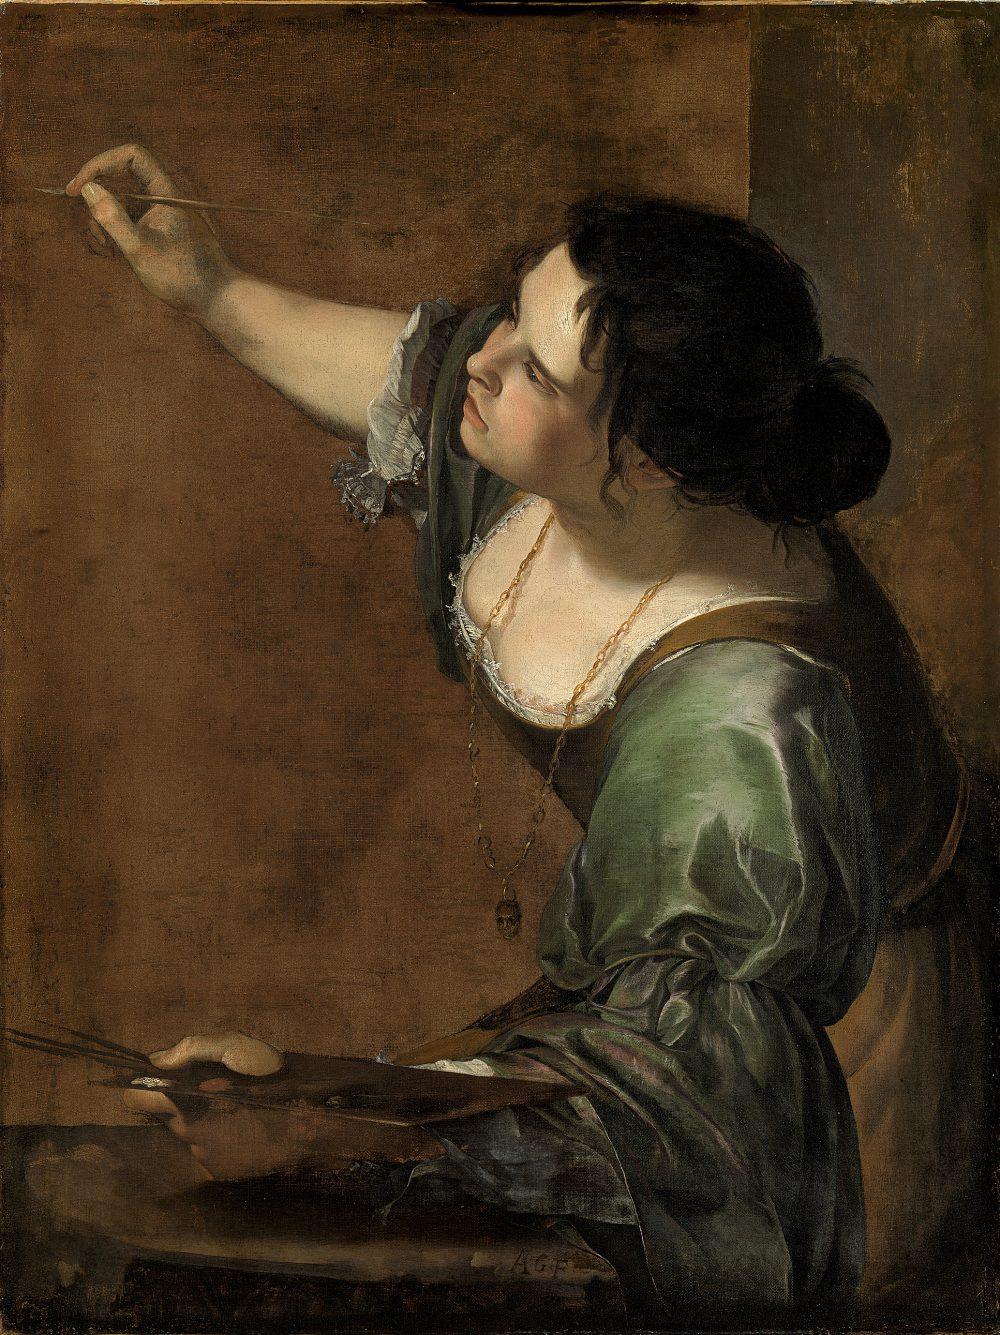 Connecting with culture again: Artemisia at The National Gallery, London